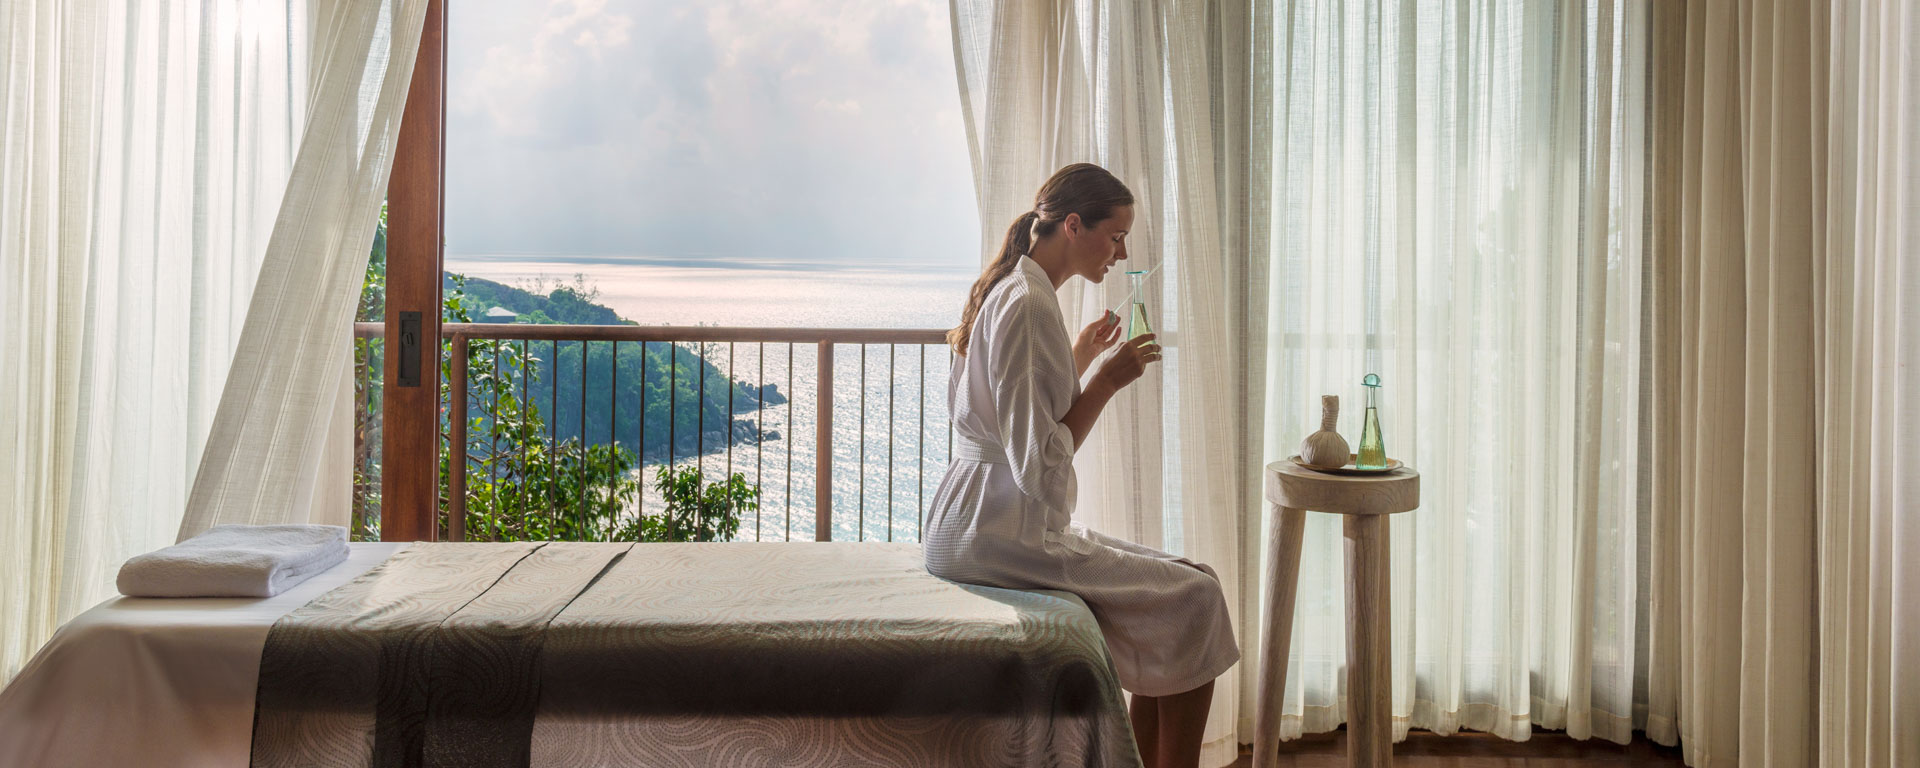 Spa do Four Seasons Seychelles. Foto: Four Seasons